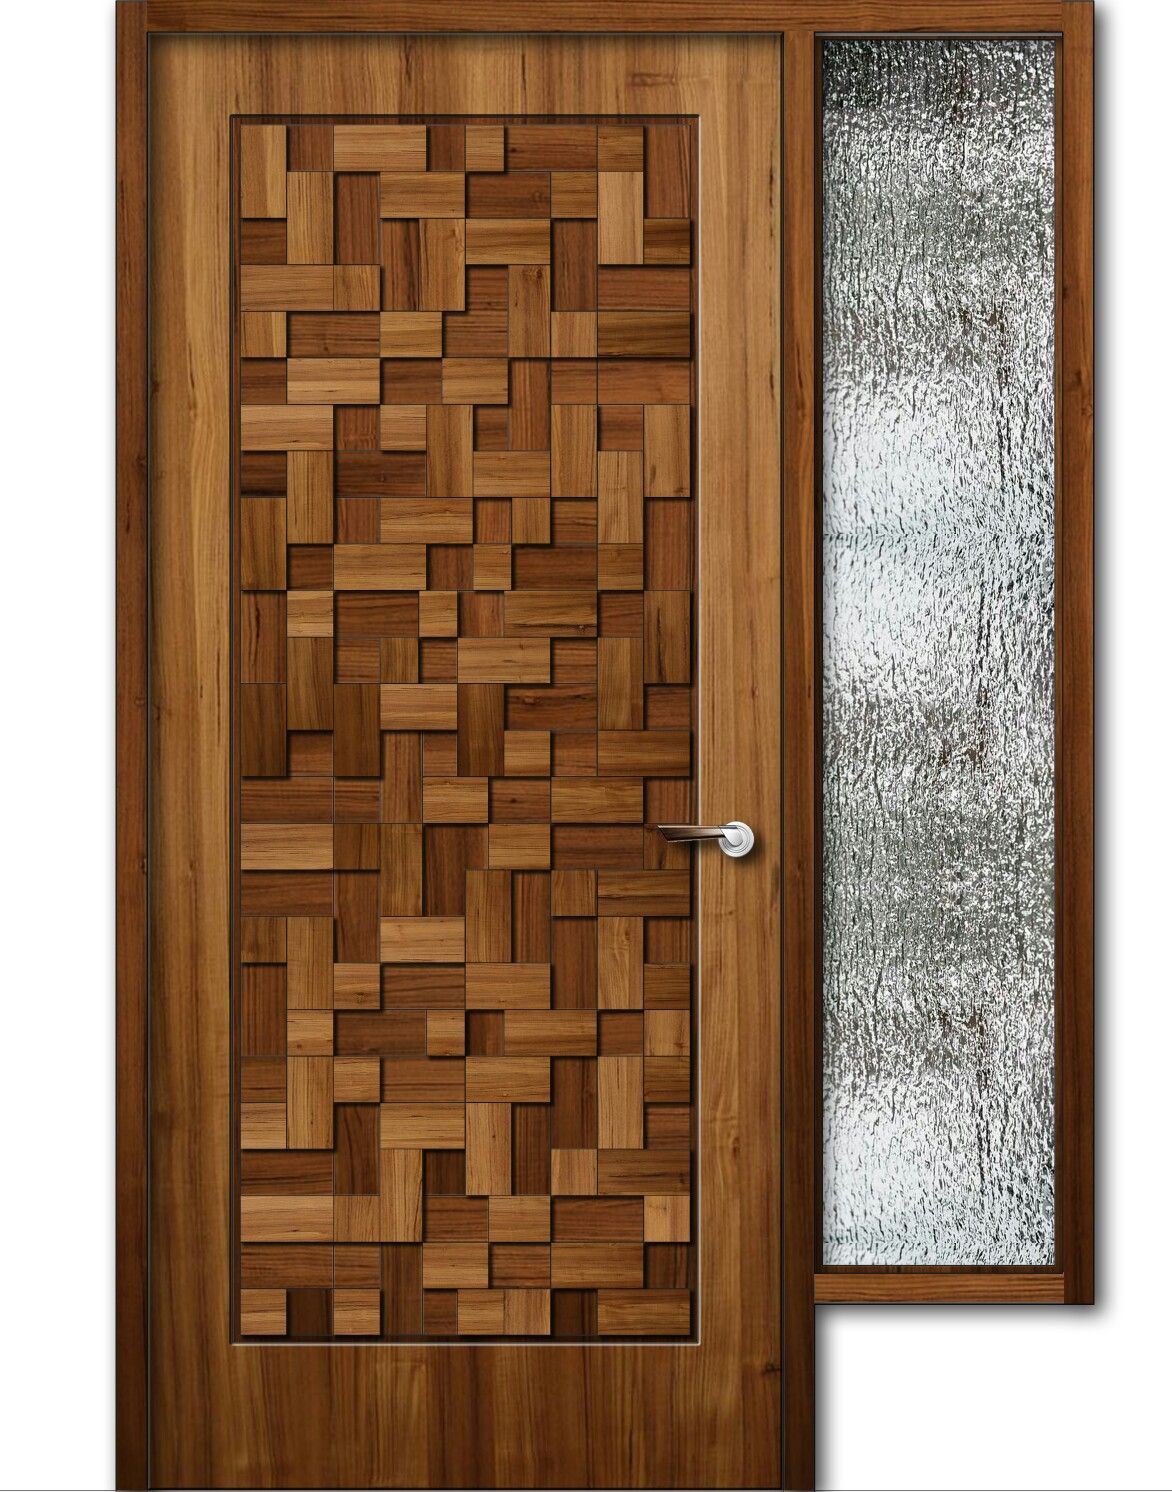 Teak wood finish wooden door with window 8feet height for Door design in wood images